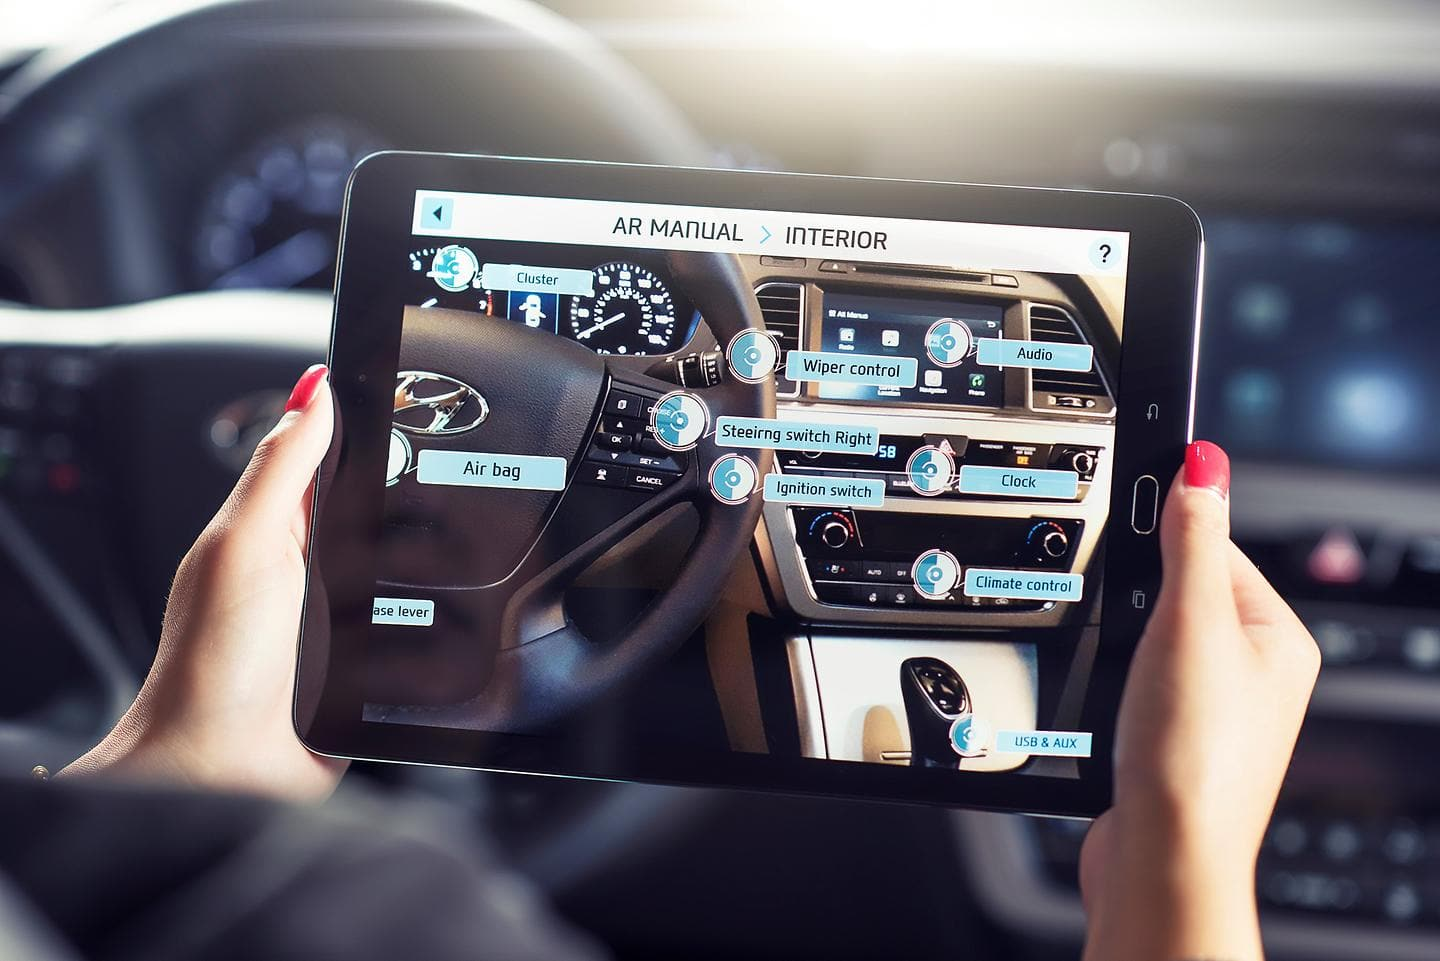 Hyundai Virtual Guide Introduces Augmented Reality to the Owner's Manual